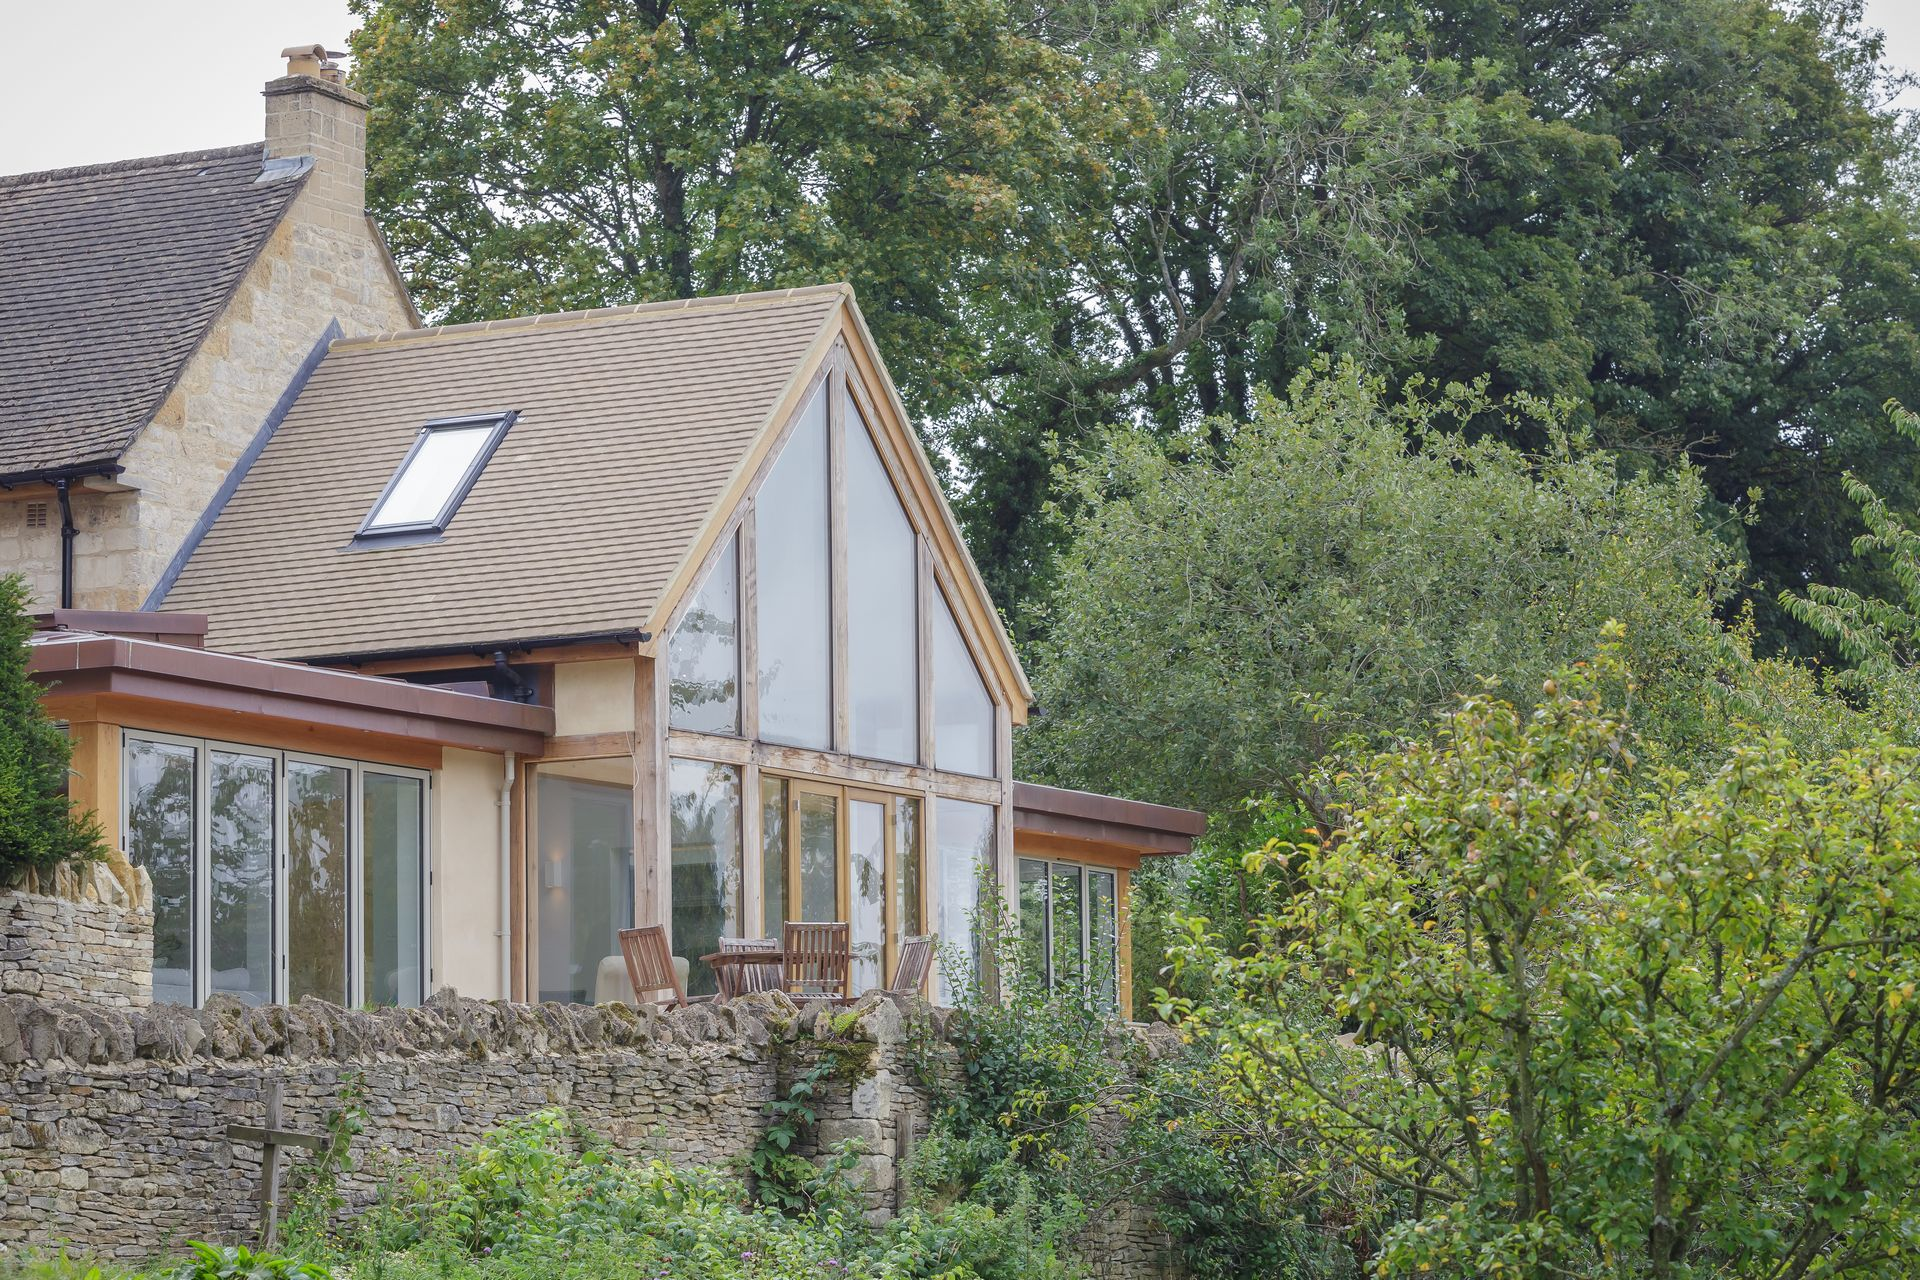 CE - Coln Cottage - Exterior 005